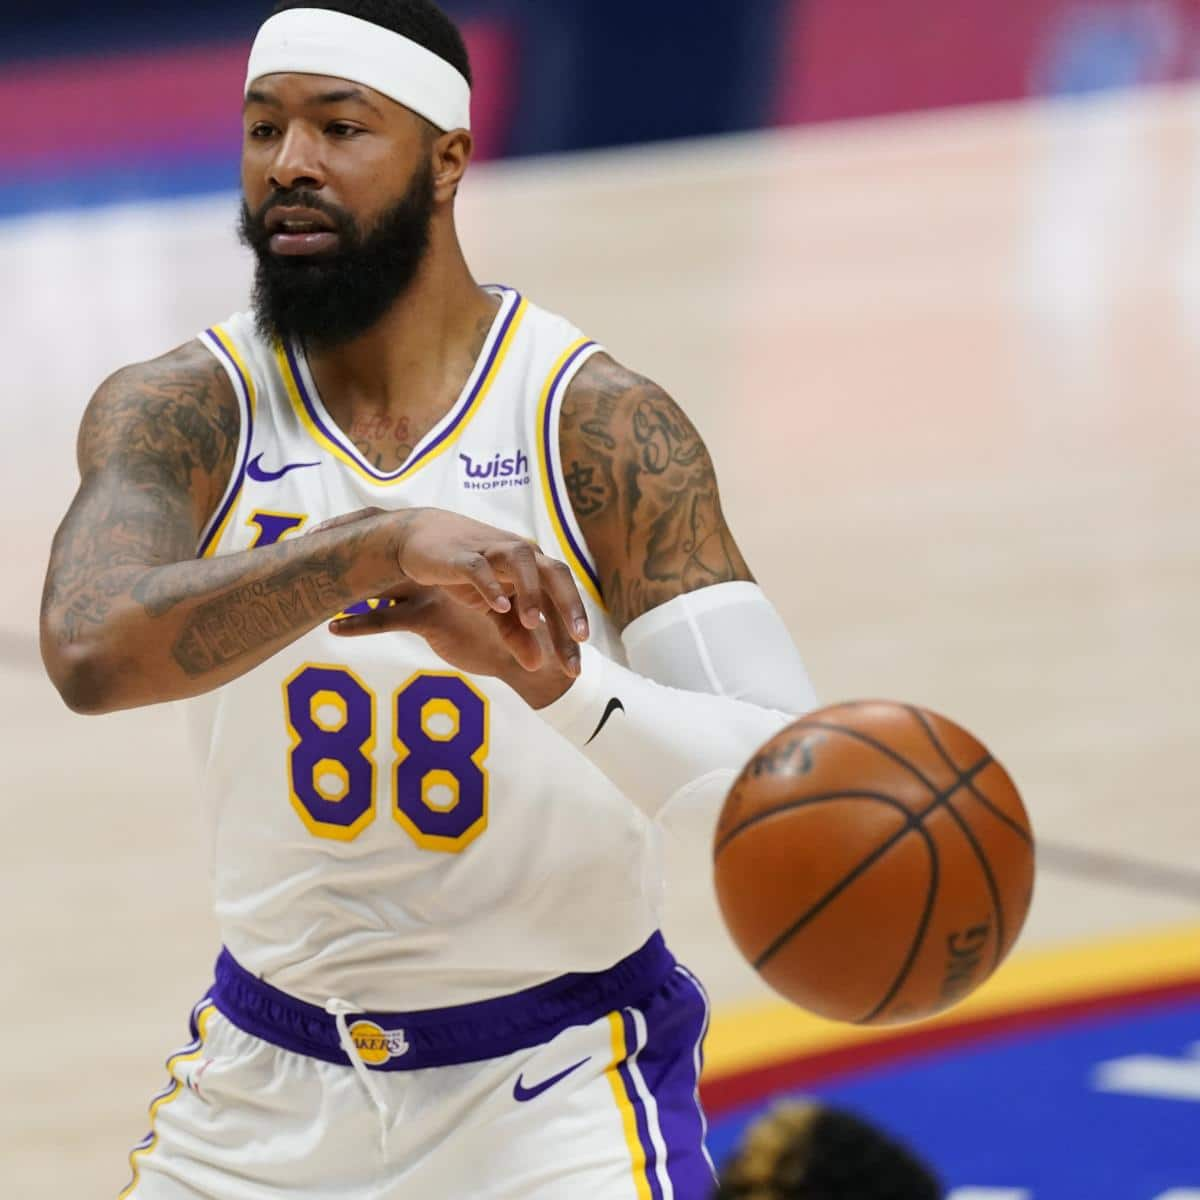 frail-lakers-pf-markieff-morris-warmth-reportedly-agree-to-1-year-contract.jpg